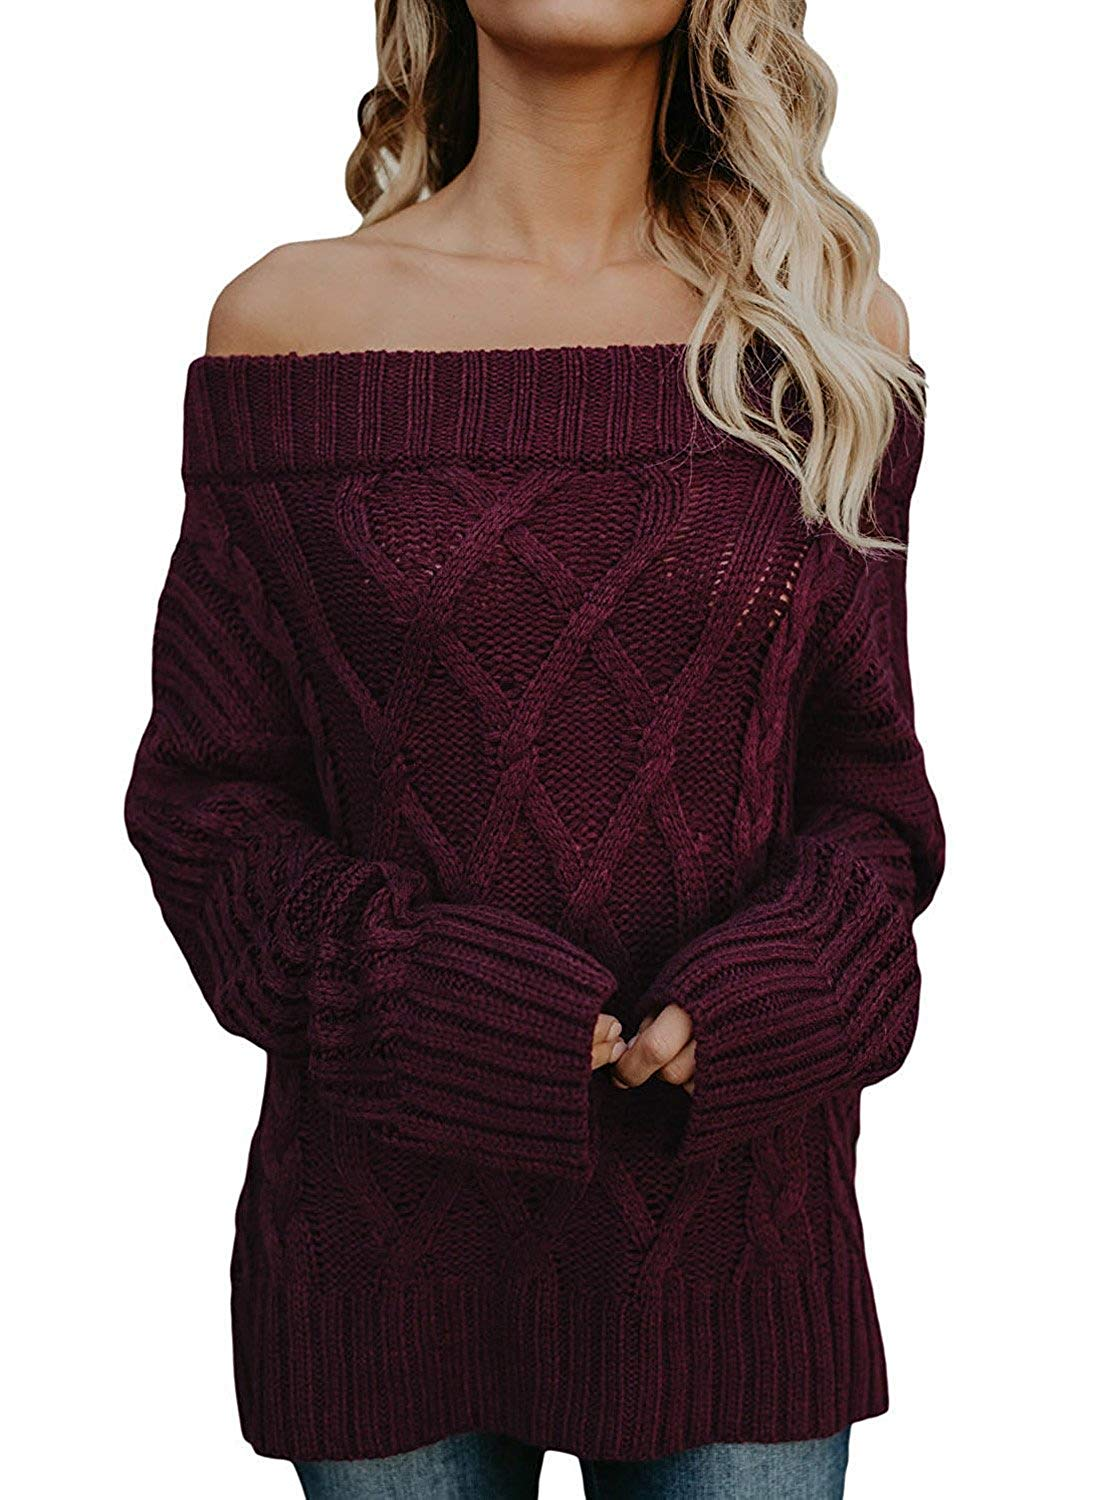 ebe71a9150d510 Get Quotations · Pengfei Women s Sexy Off Shoulder Loose Sweaters Oversized  Batwing Sleeve Cable Knit Pullovers